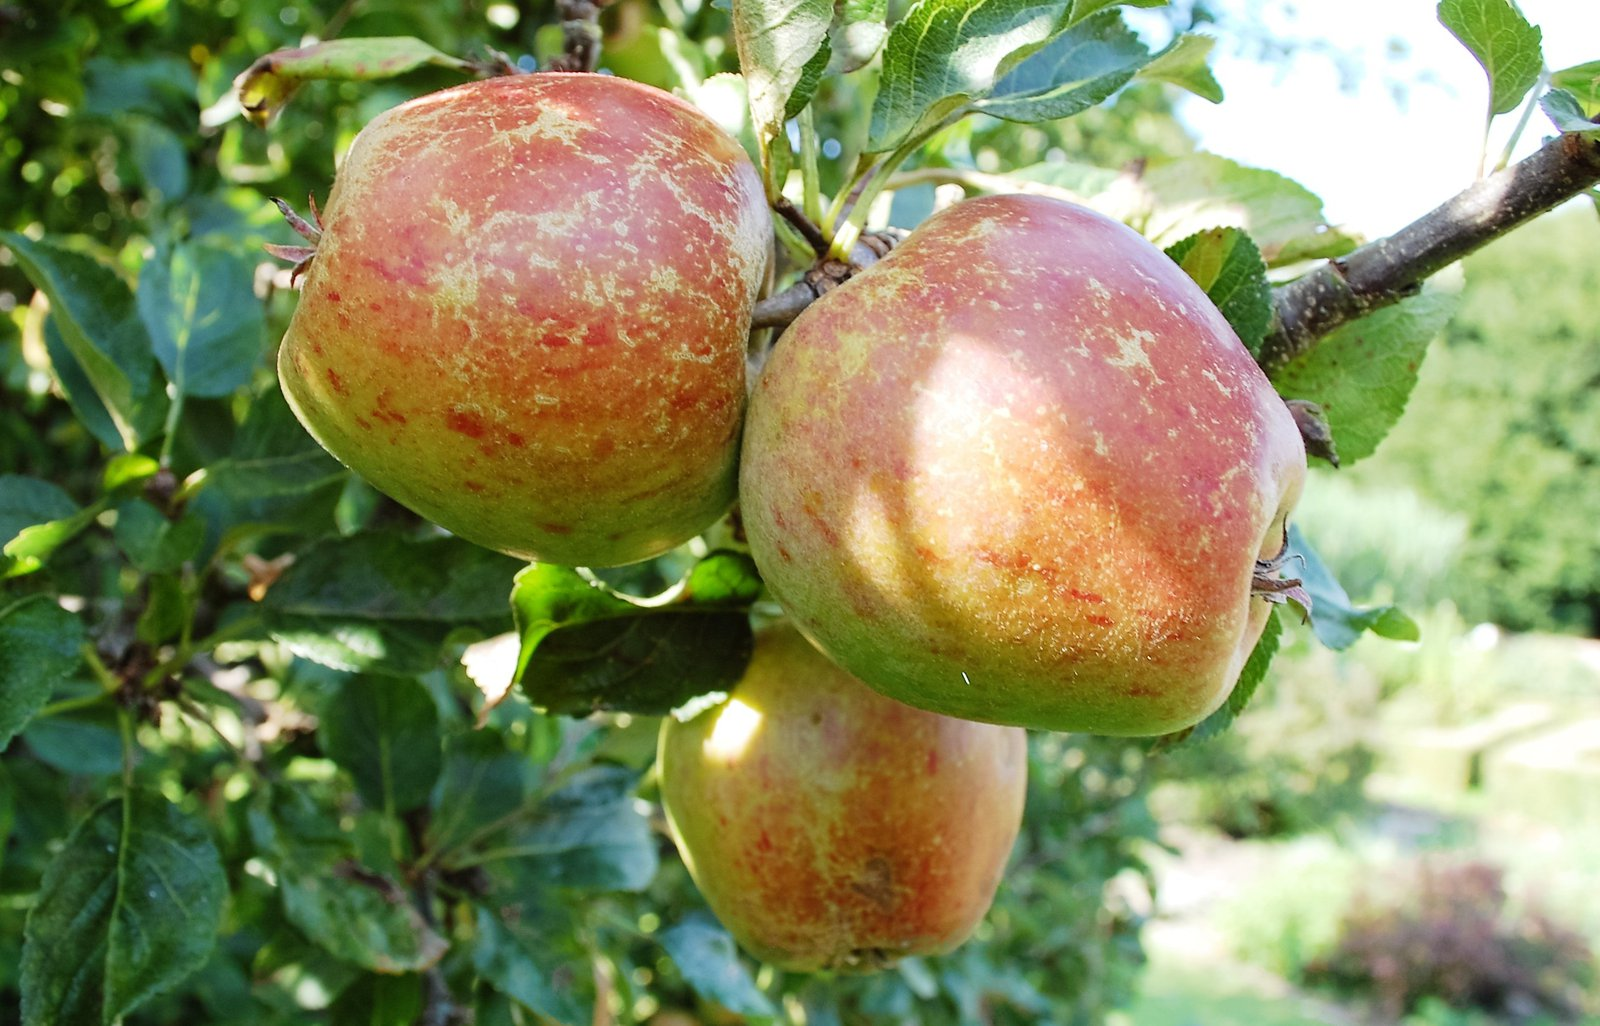 Apple ripening in our garden